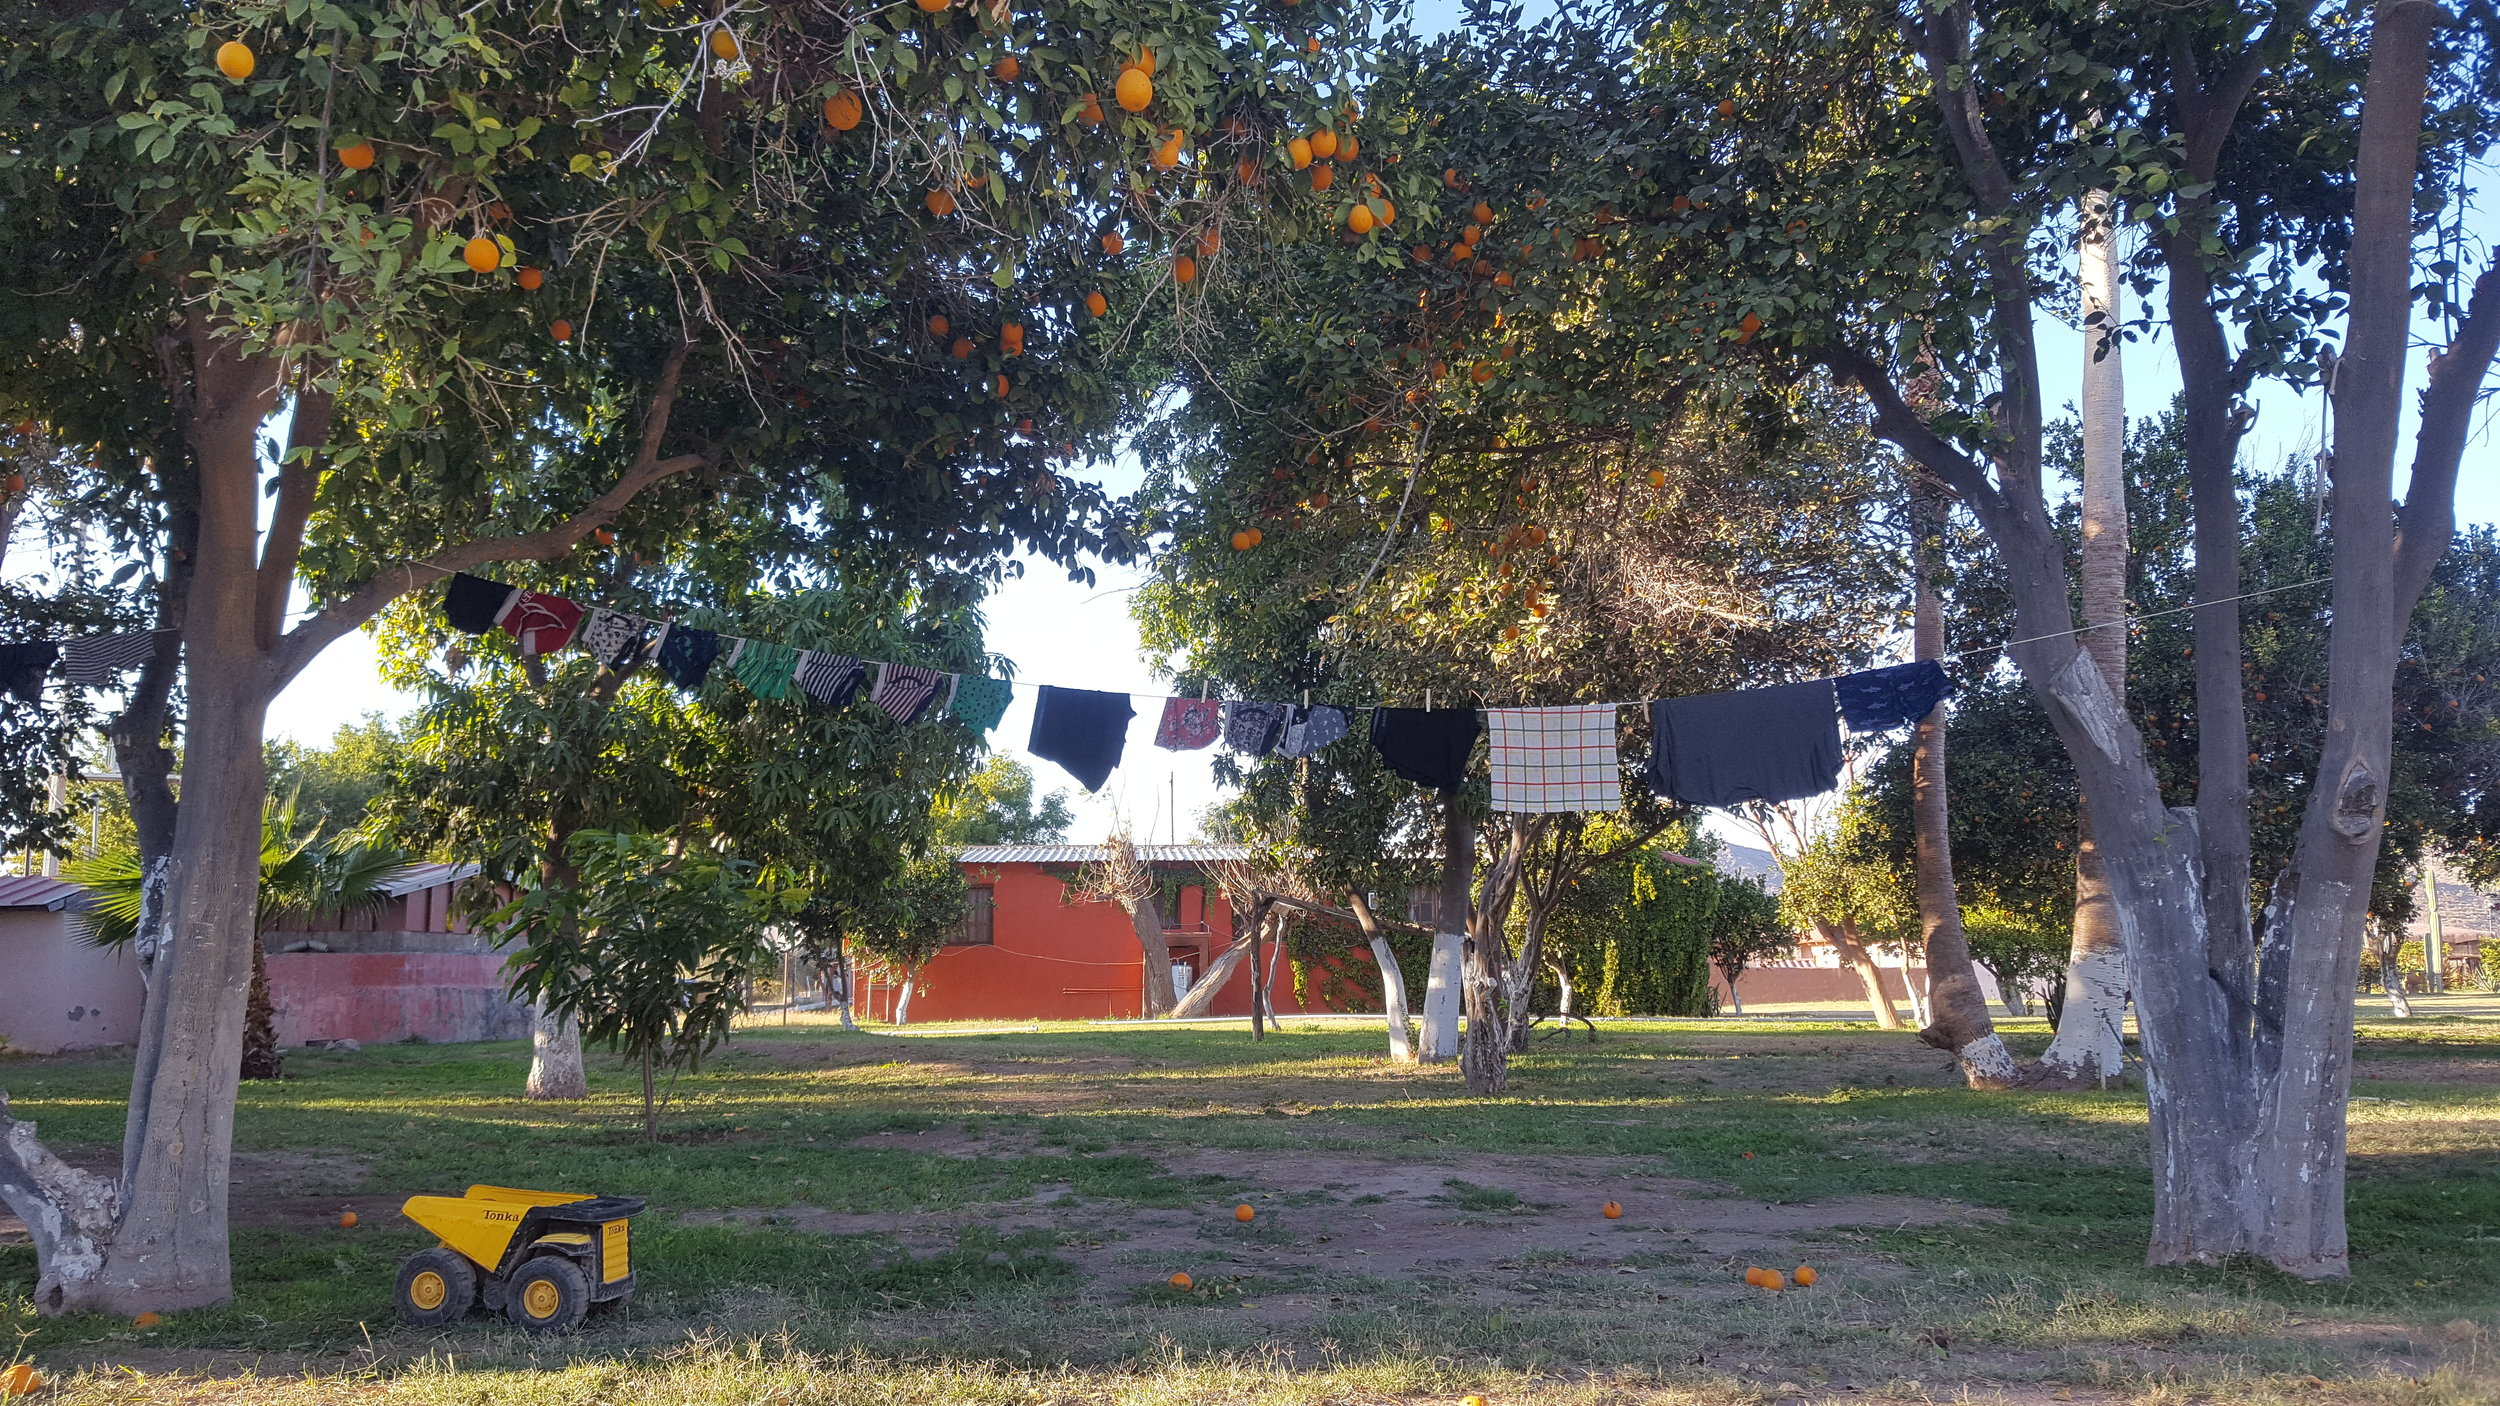 Laundry hung between trees...the simple life.